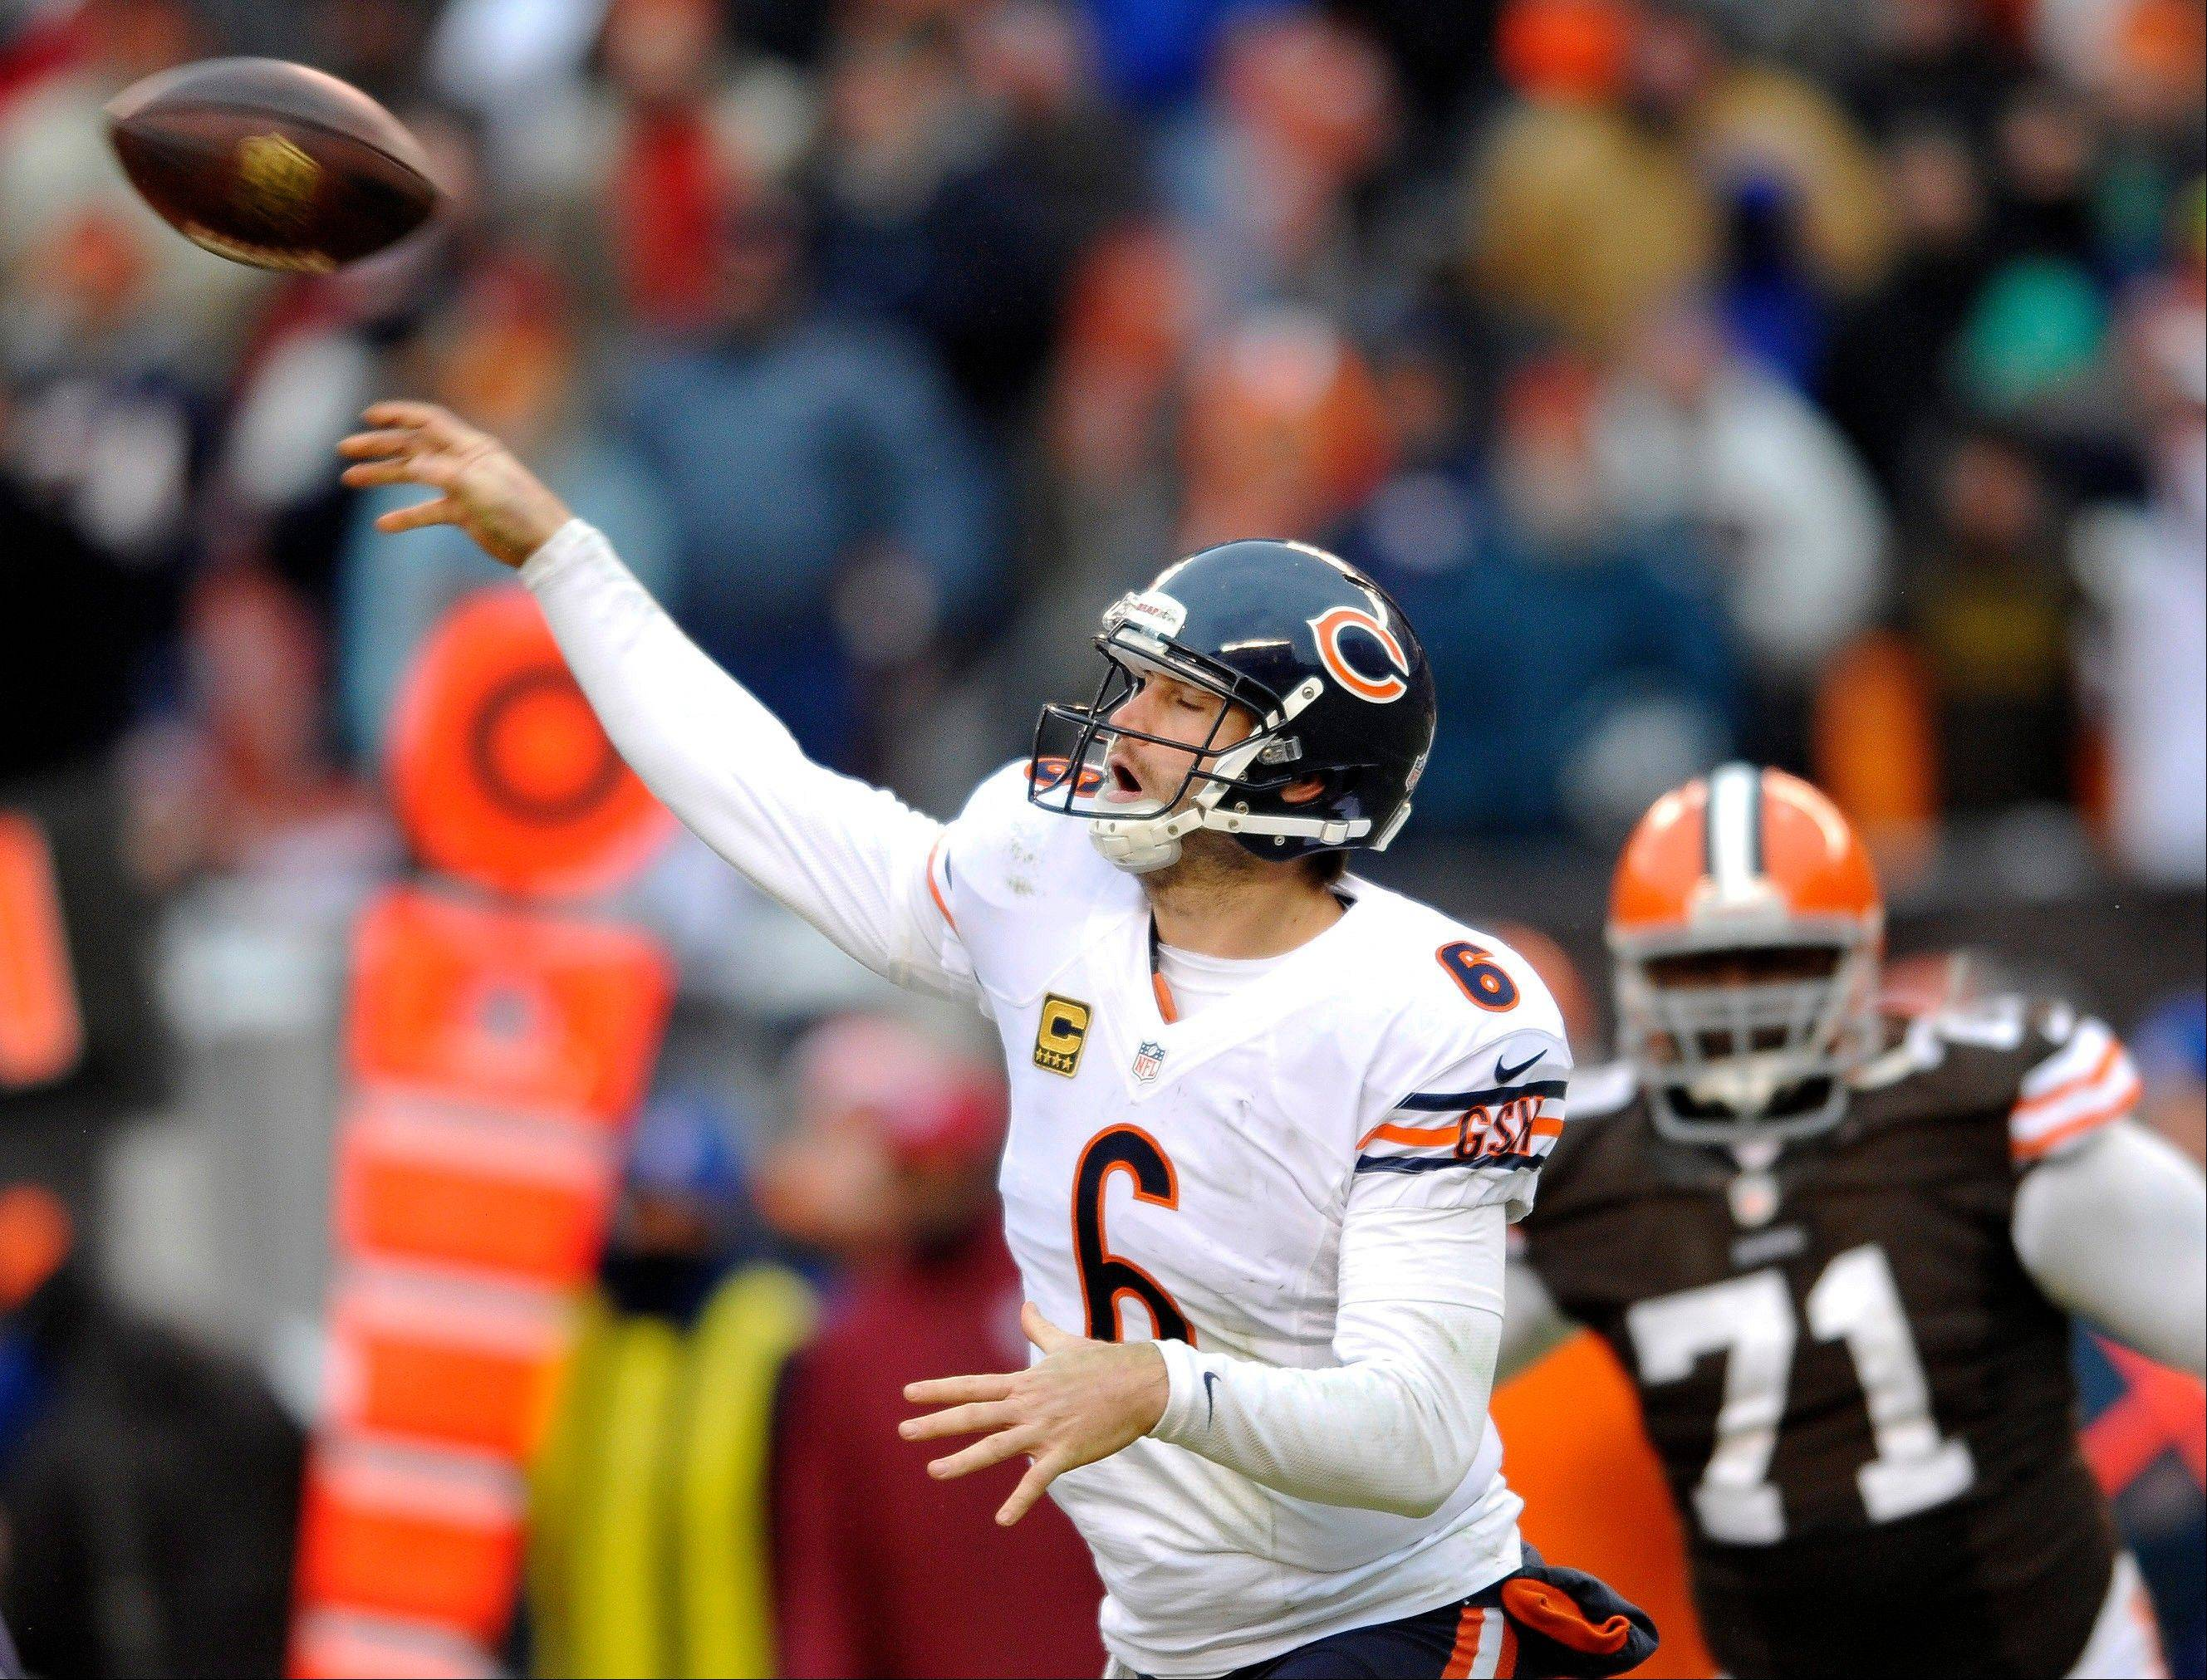 Chicago Bears quarterback Jay Cutler passes during the fourth quarter under pressure from Cleveland Browns defensive end Ahtyba Rubin.